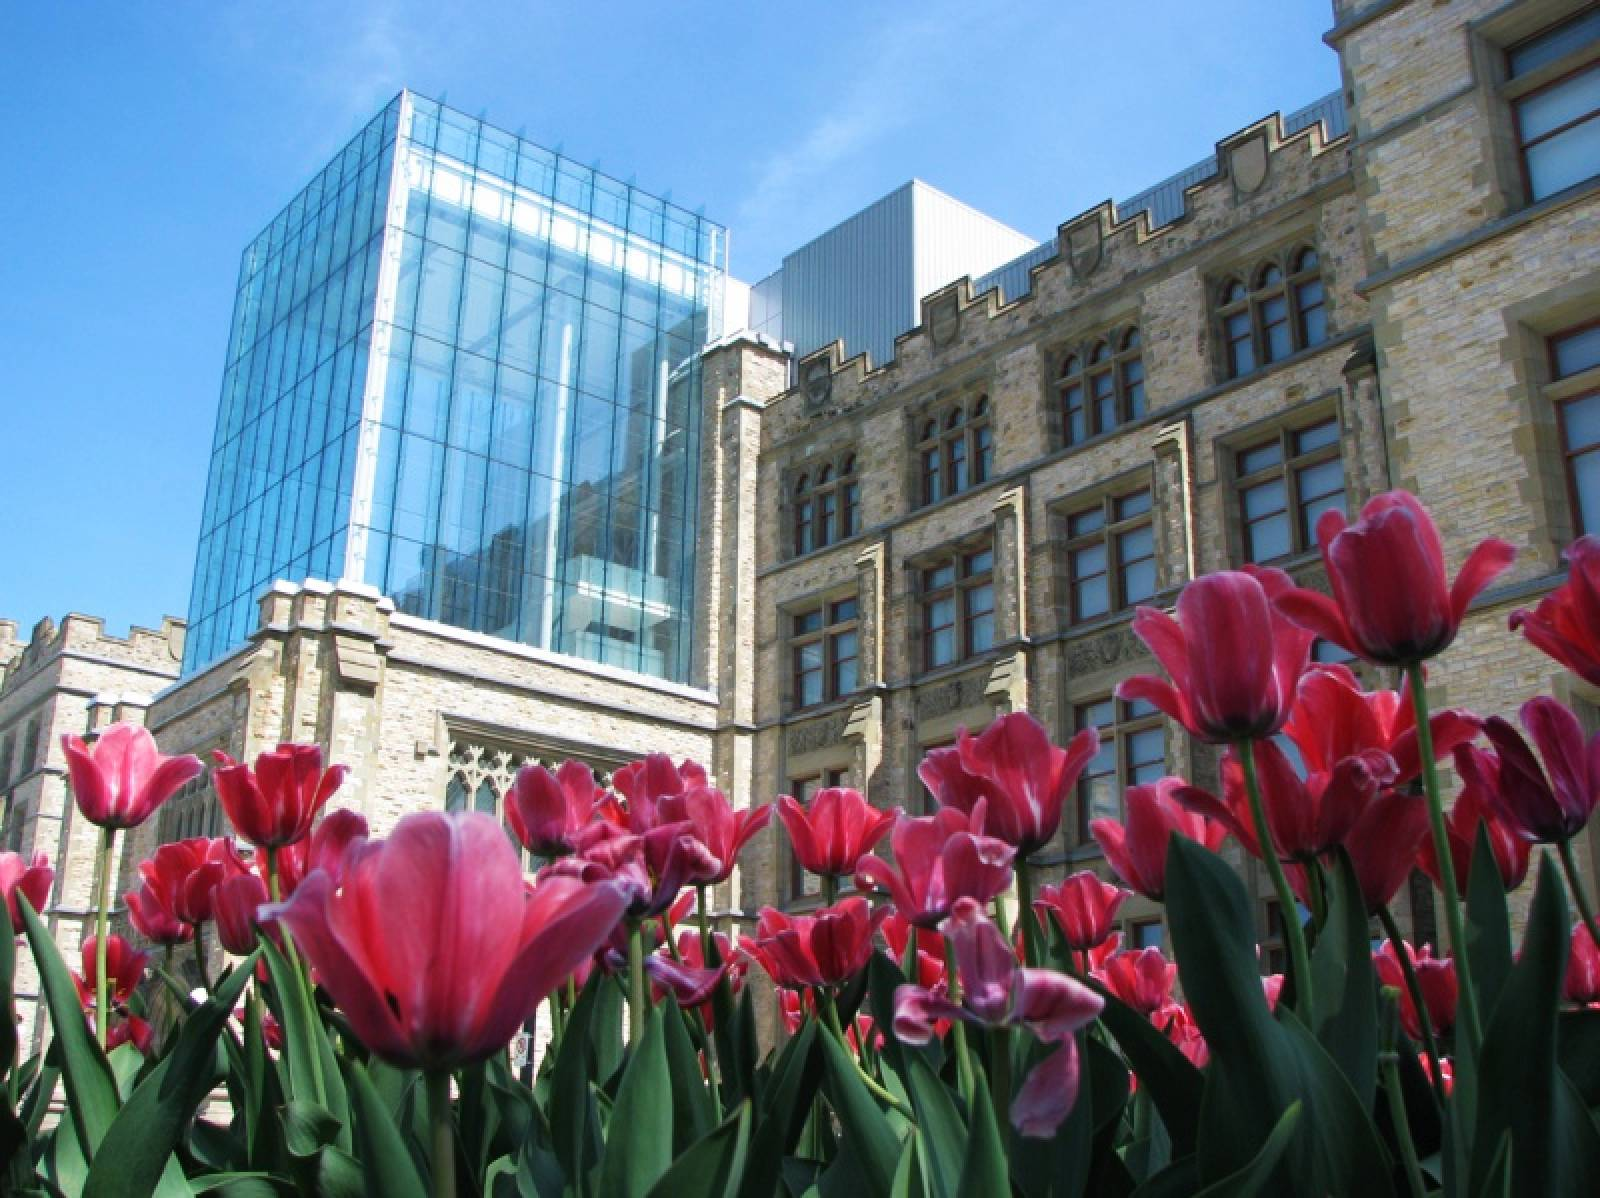 Sights of Canada: a combination of nature and architecture